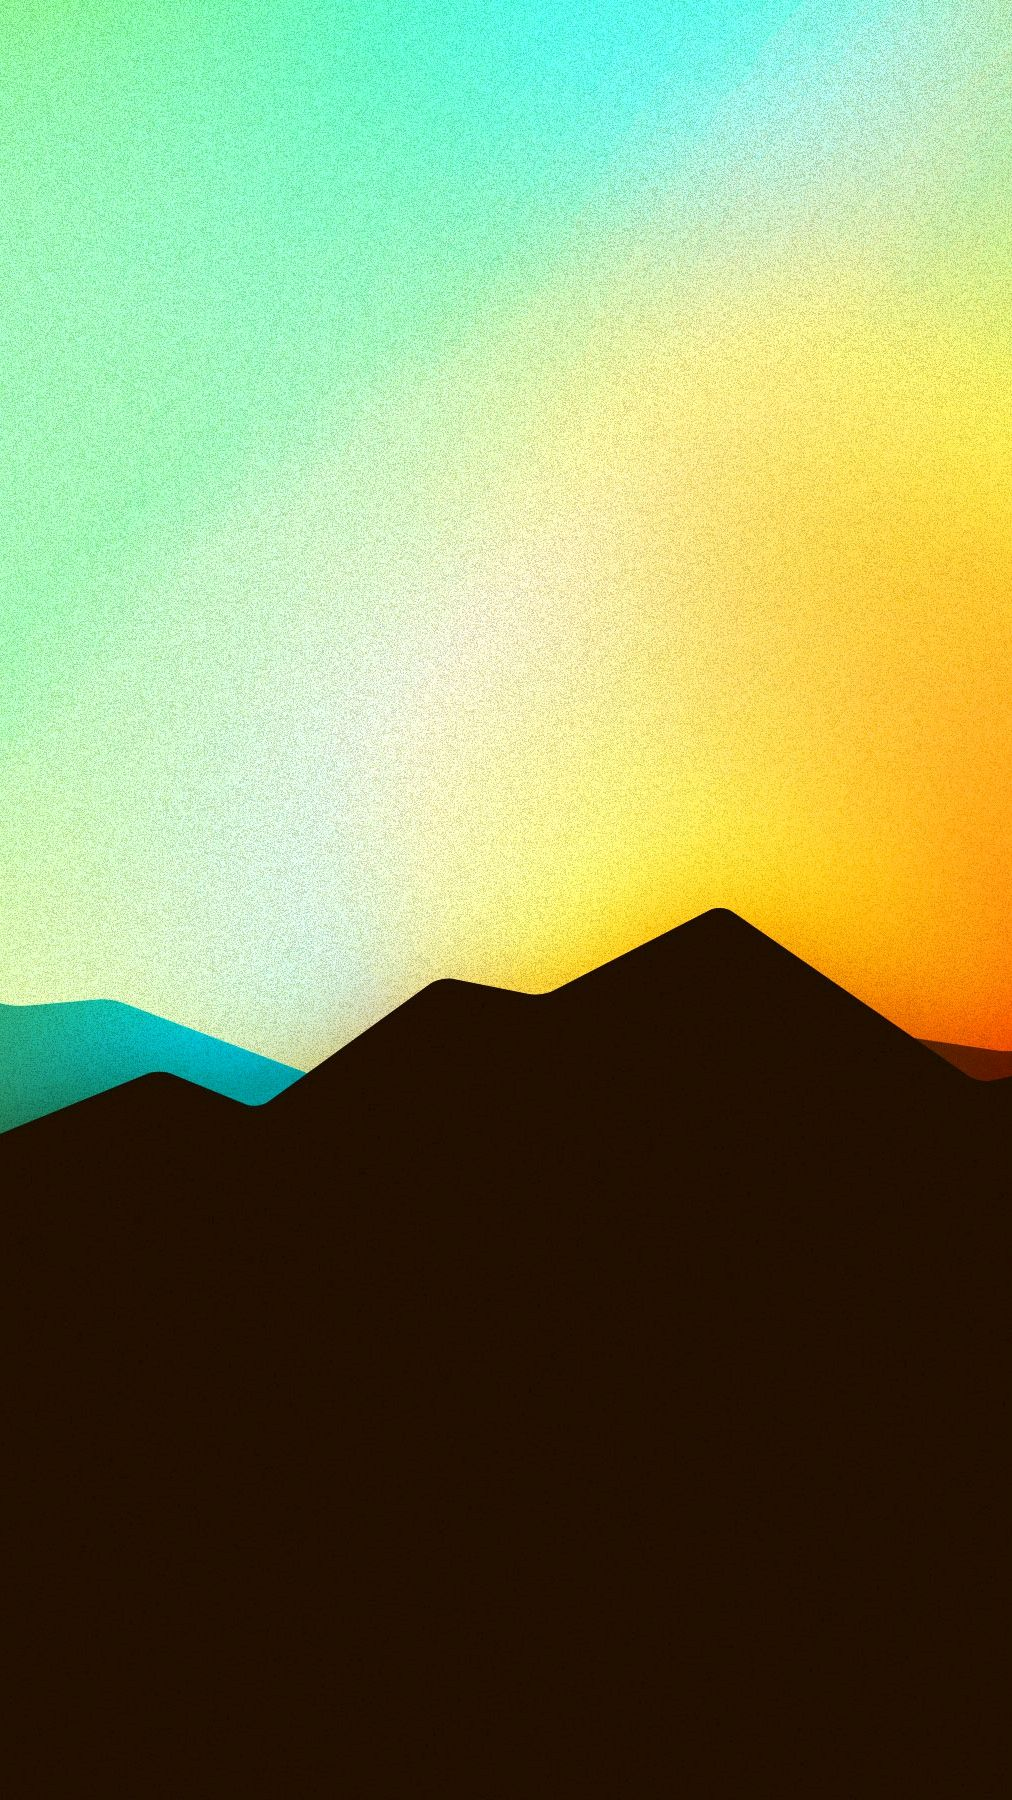 Minimal Mountain Sunrise iPhone Wallpaper iphoneswallpapers com